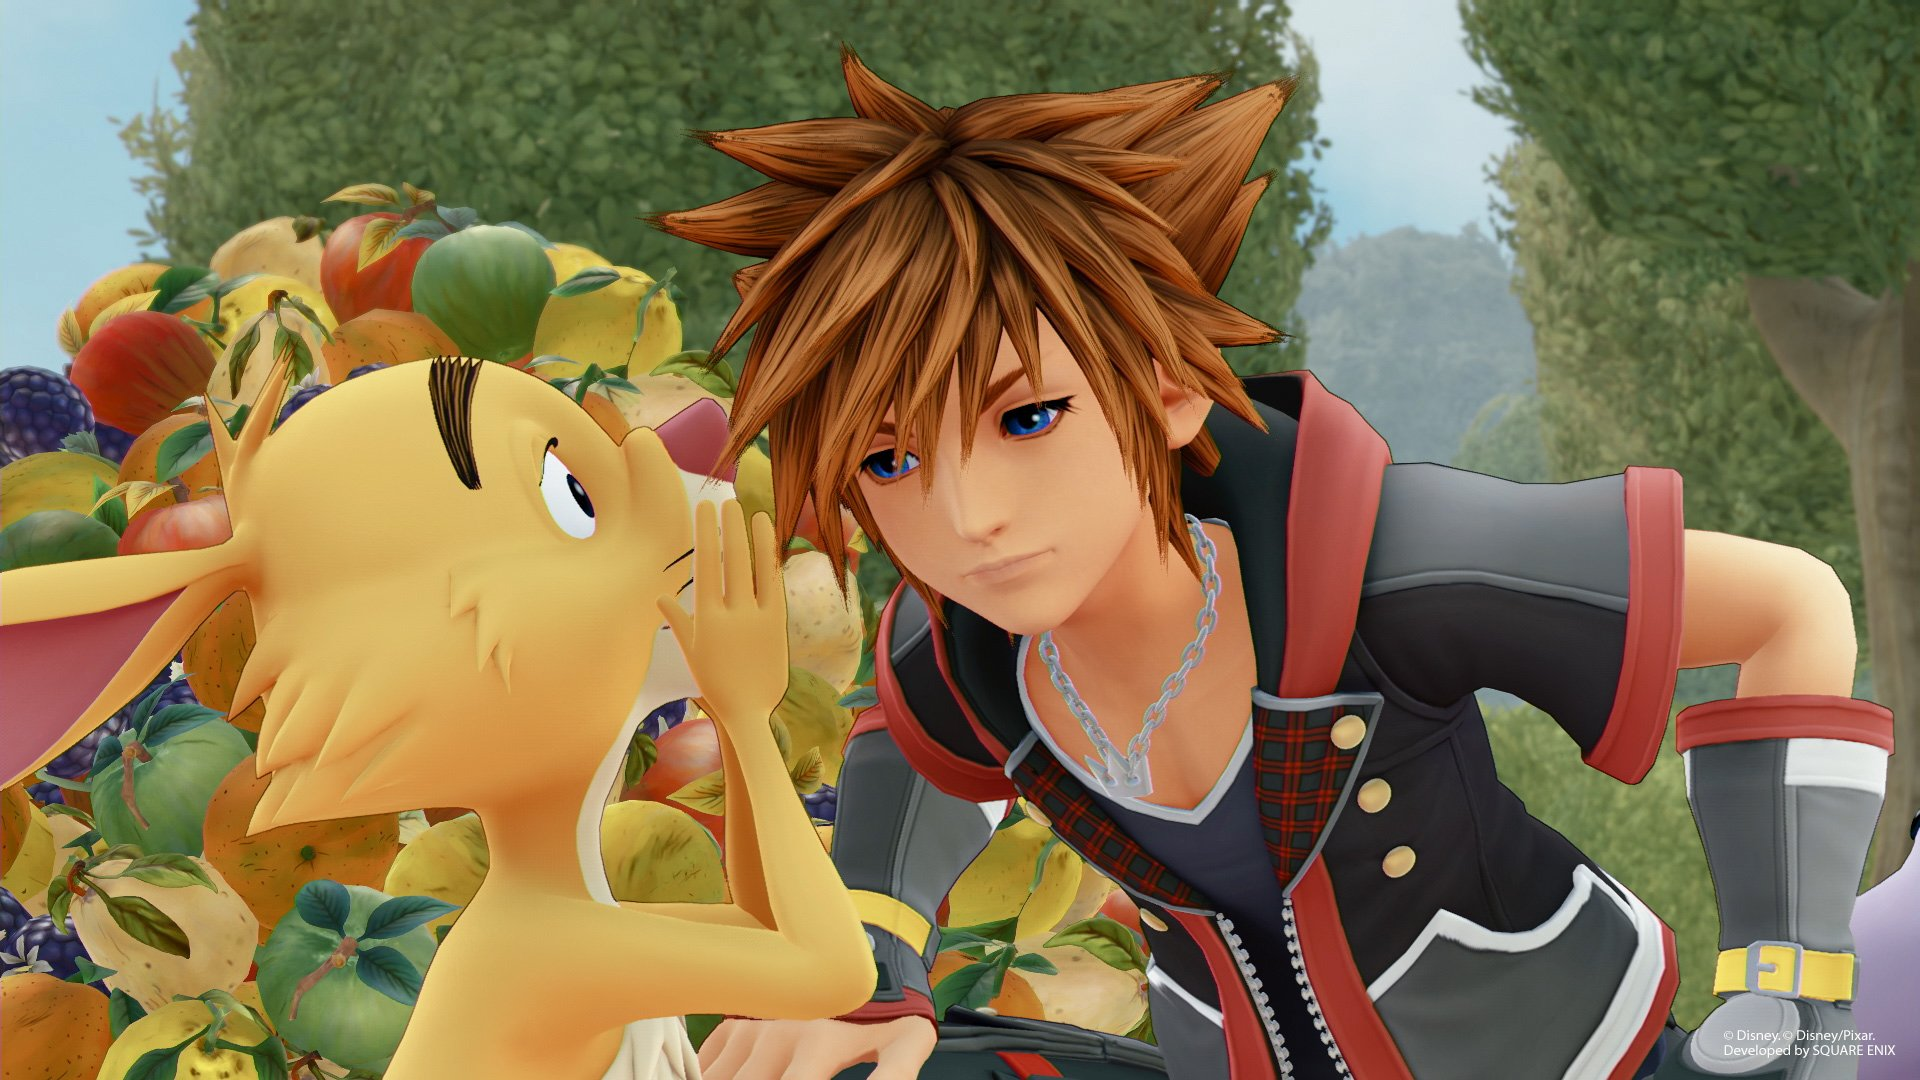 Kingdom Hearts 3 will get new story DLC that'll help explain the game's epilogue and secret movie.